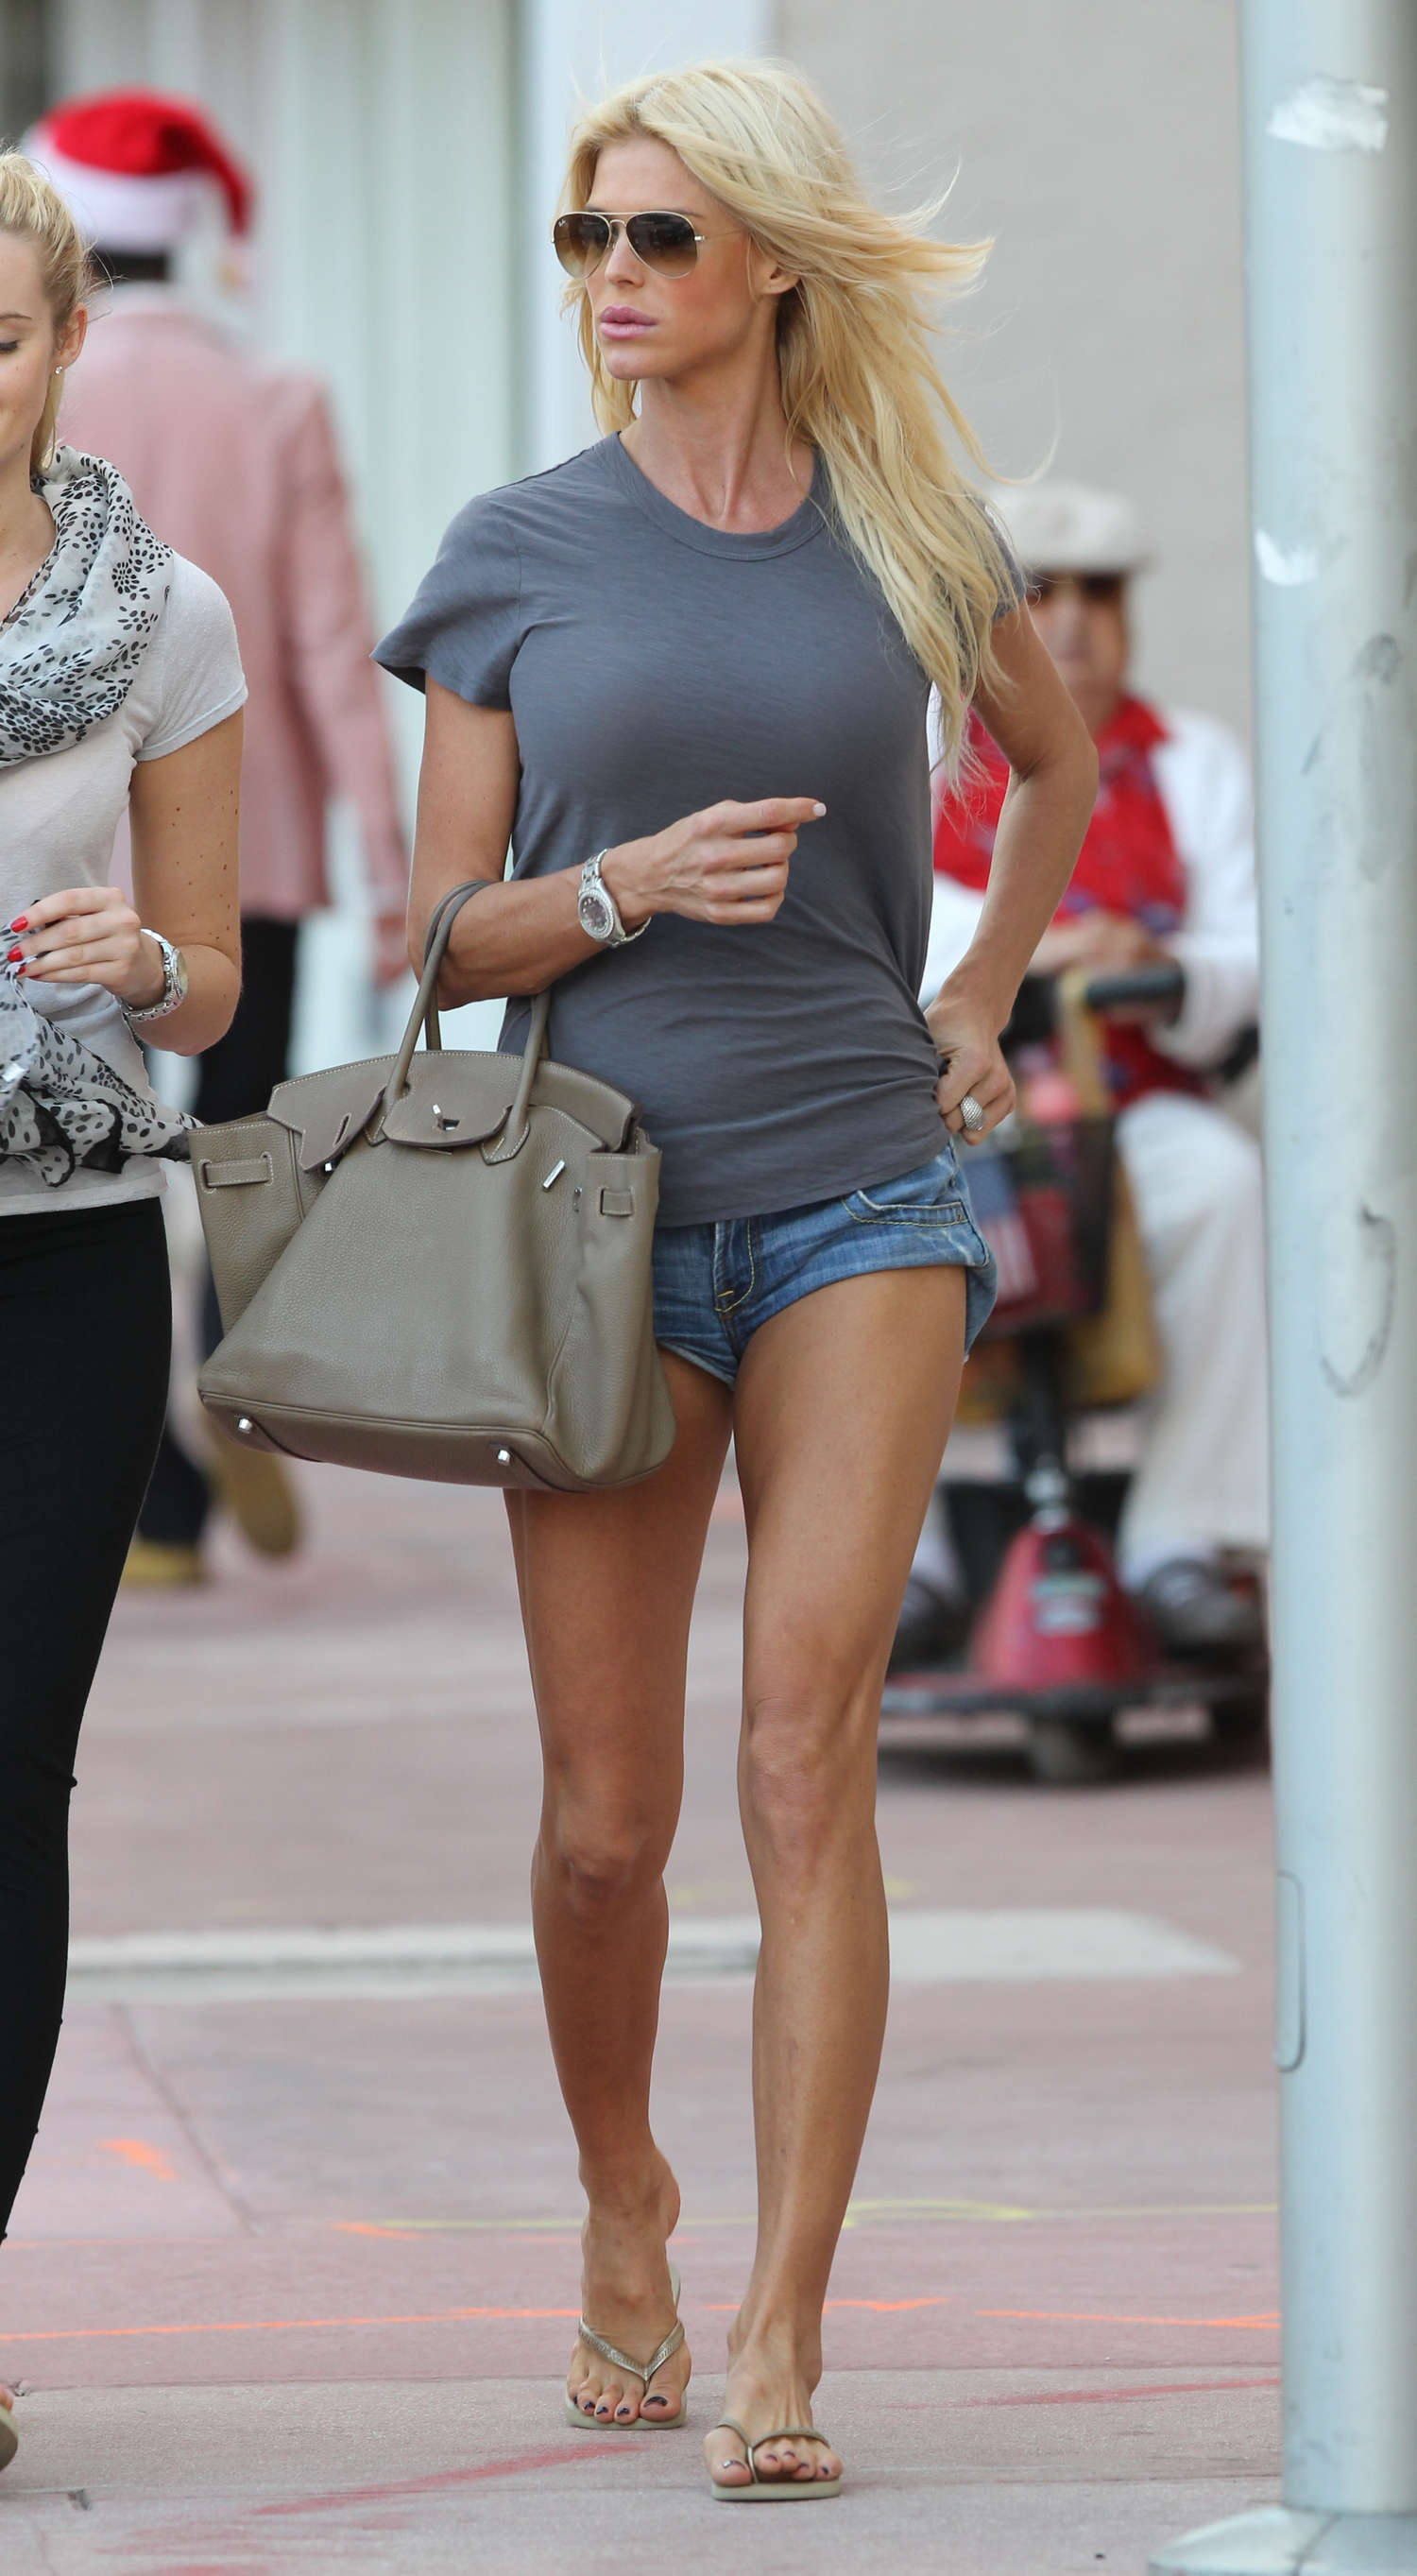 Victoria Silvstedt In Shorts 09 Gotceleb